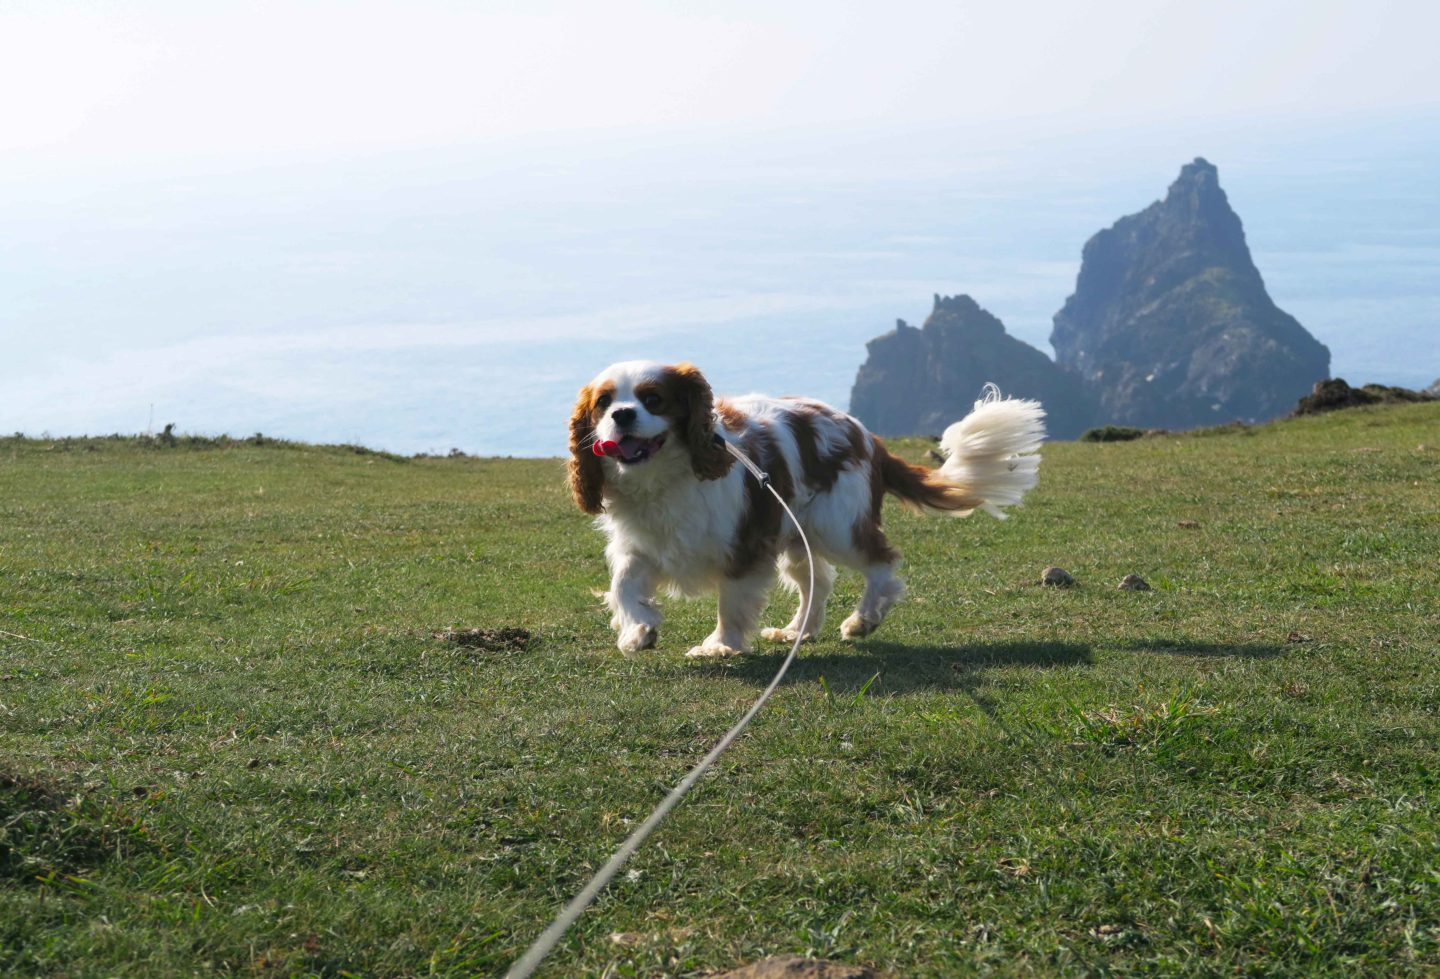 cavalier king charles spaniel dog on lead overlooking kynance cove in cornwall